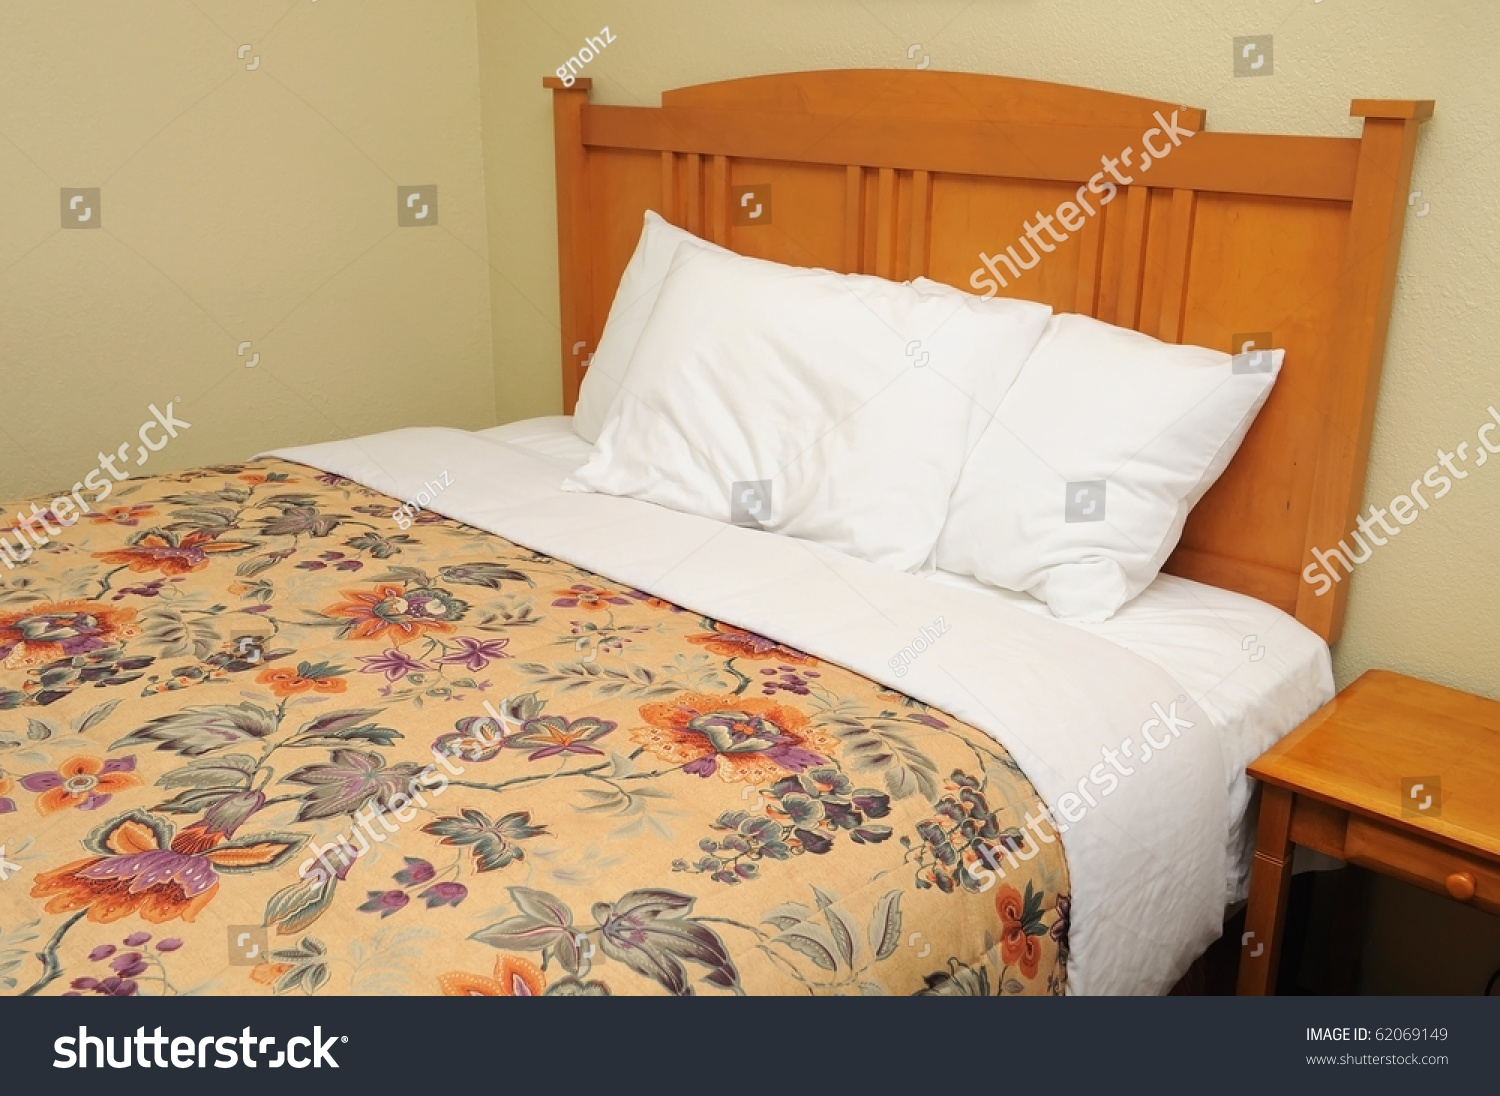 Single generic western style bed suitable stock photo for Western style beds